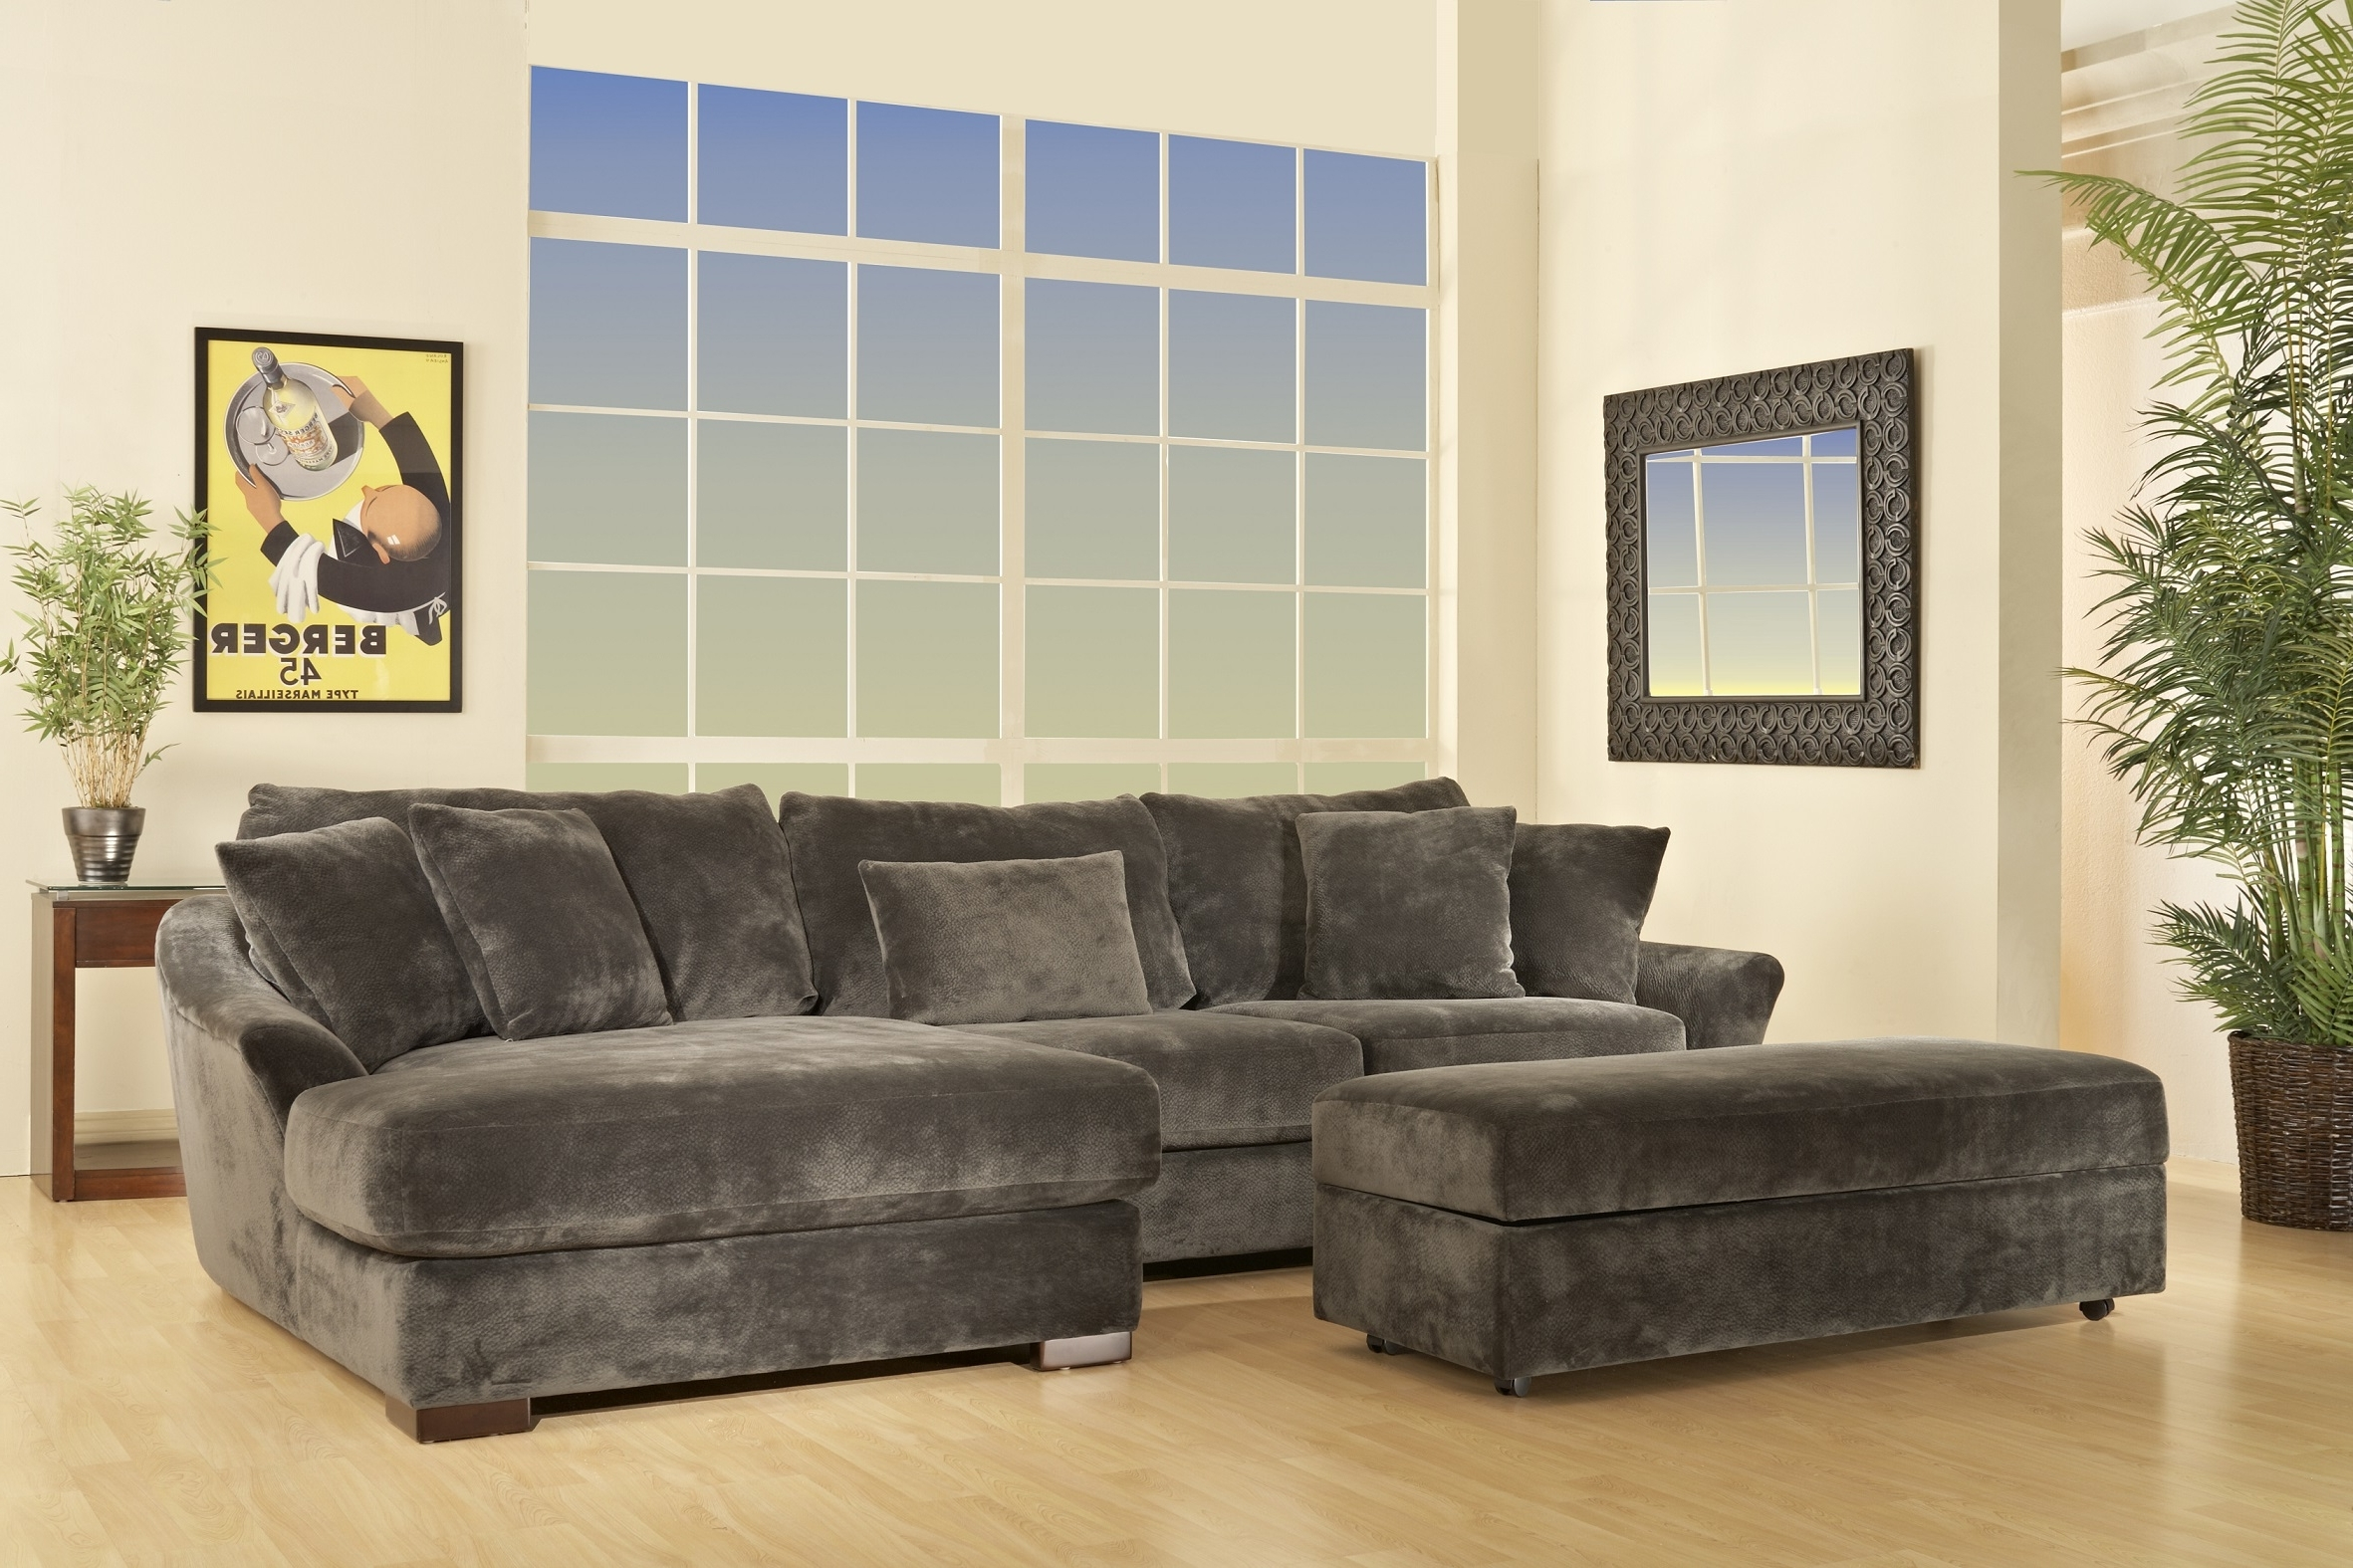 Sectional Sofas At Atlanta In Latest Sectional Sofa Design: Free Picture Sectional Sofas Atlanta Sofa (View 1 of 15)